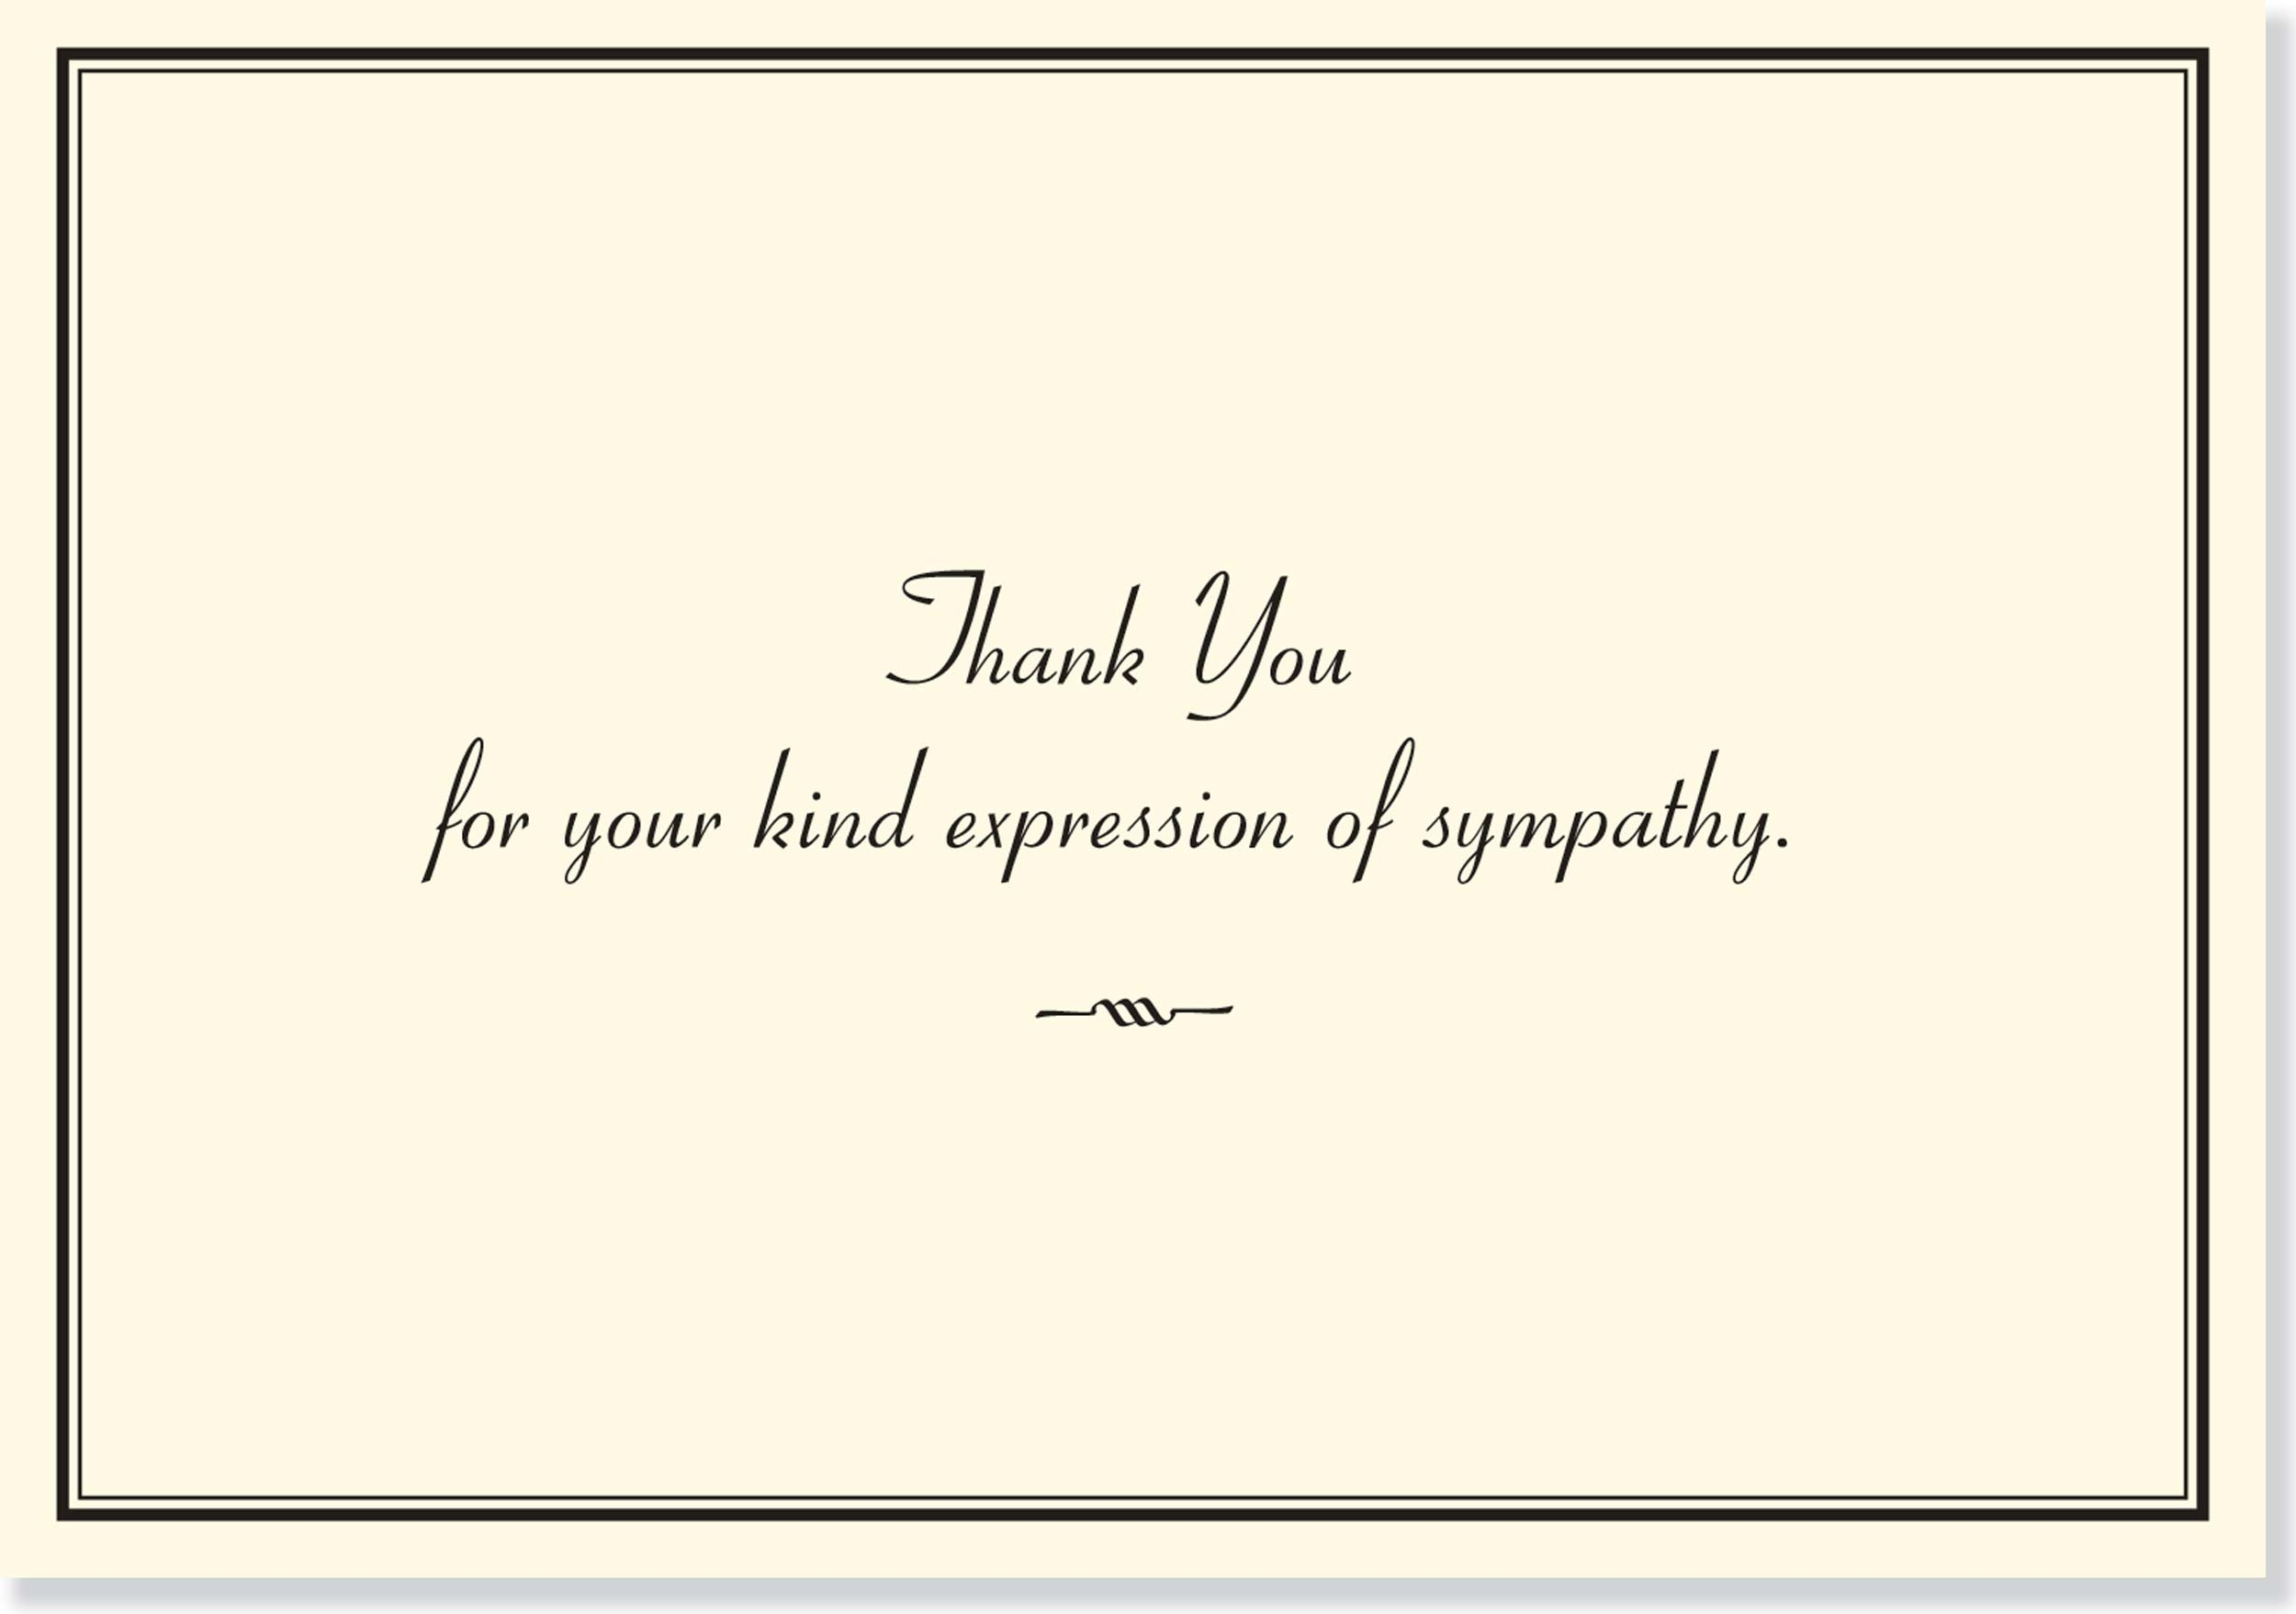 Thank you for sympathy etamemibawa thank you for sympathy izmirmasajfo Images